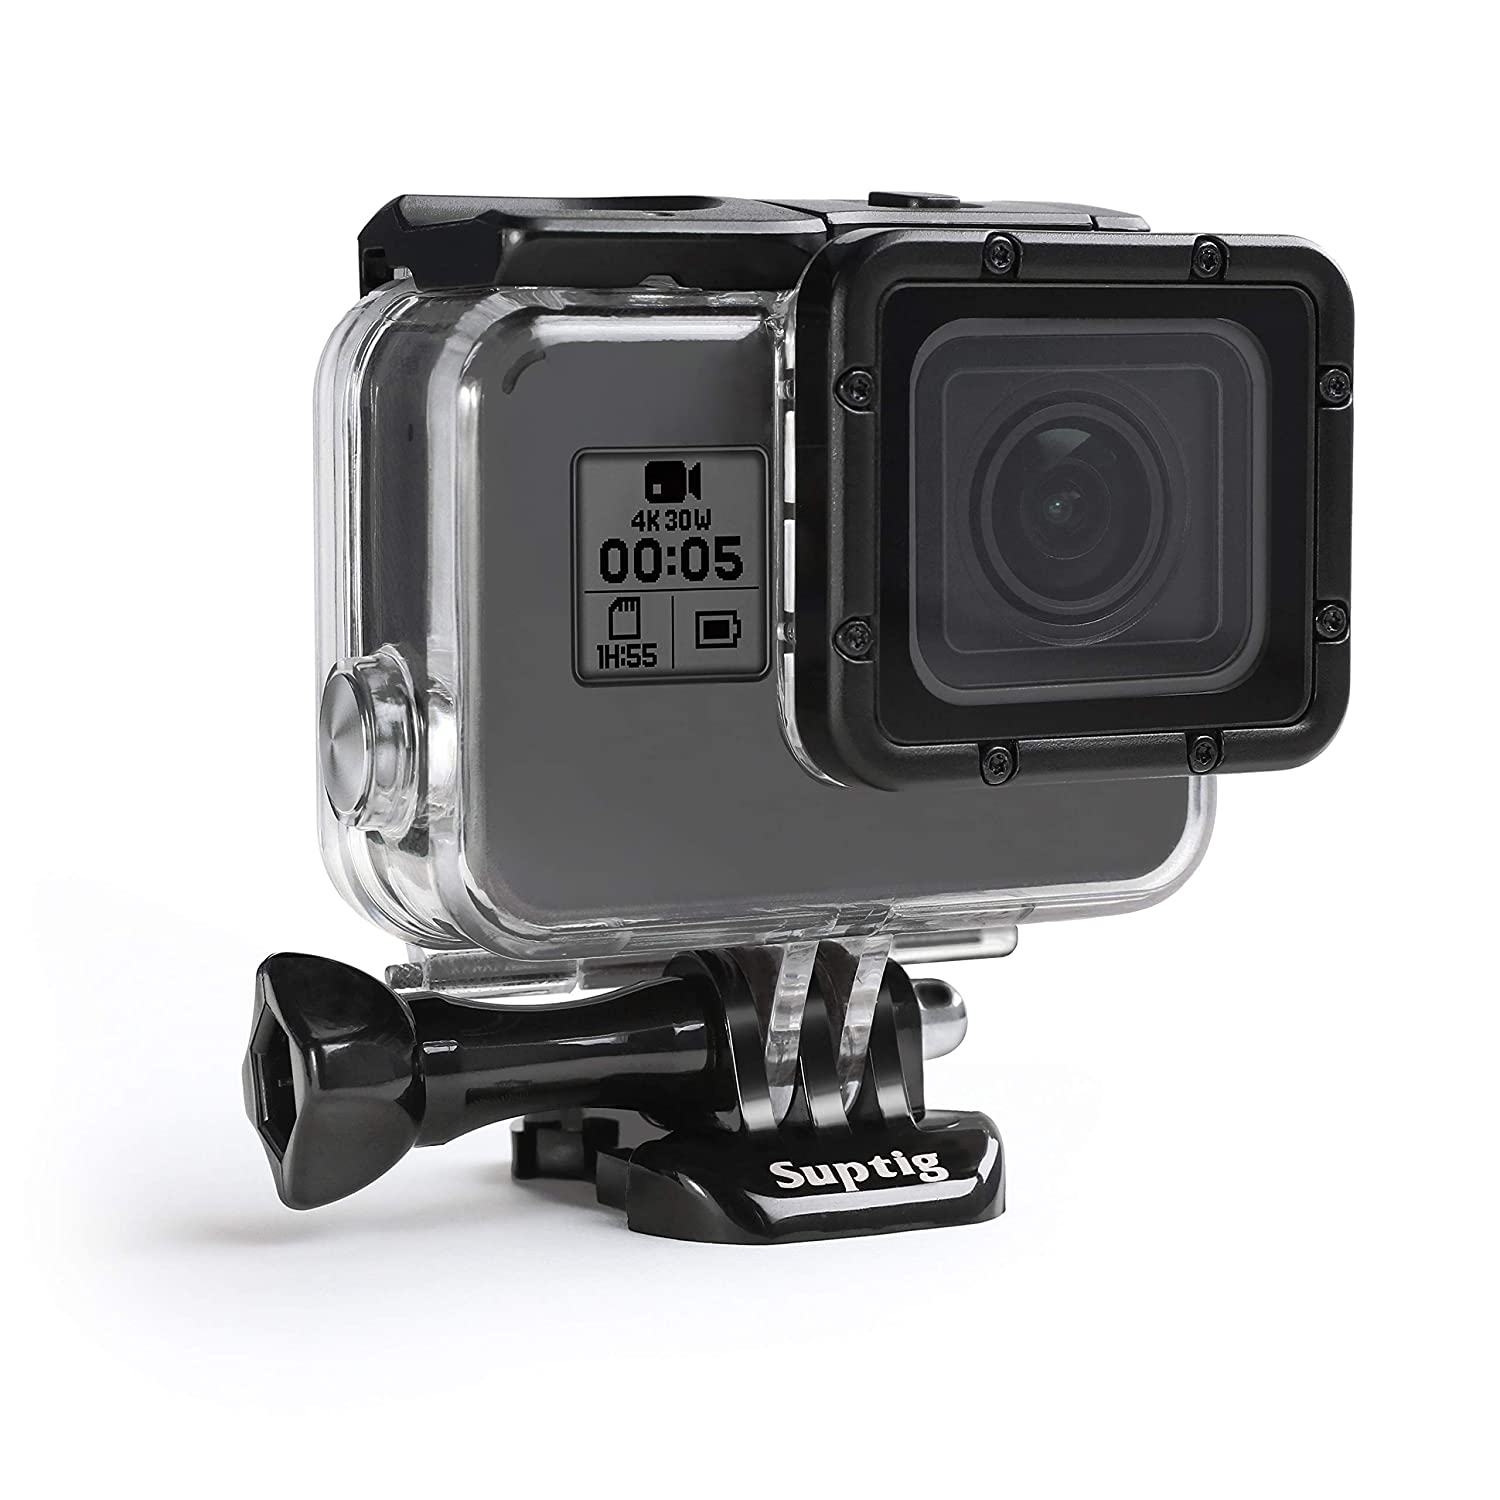 Suptig Case Housing Waterproof Case for Gopro Hero 7 Black Gopro Hero 5 Gopro Hero 6 Gopro Hero 2018 Action Camera Waterproof 147ft(45Meters) RSX-352